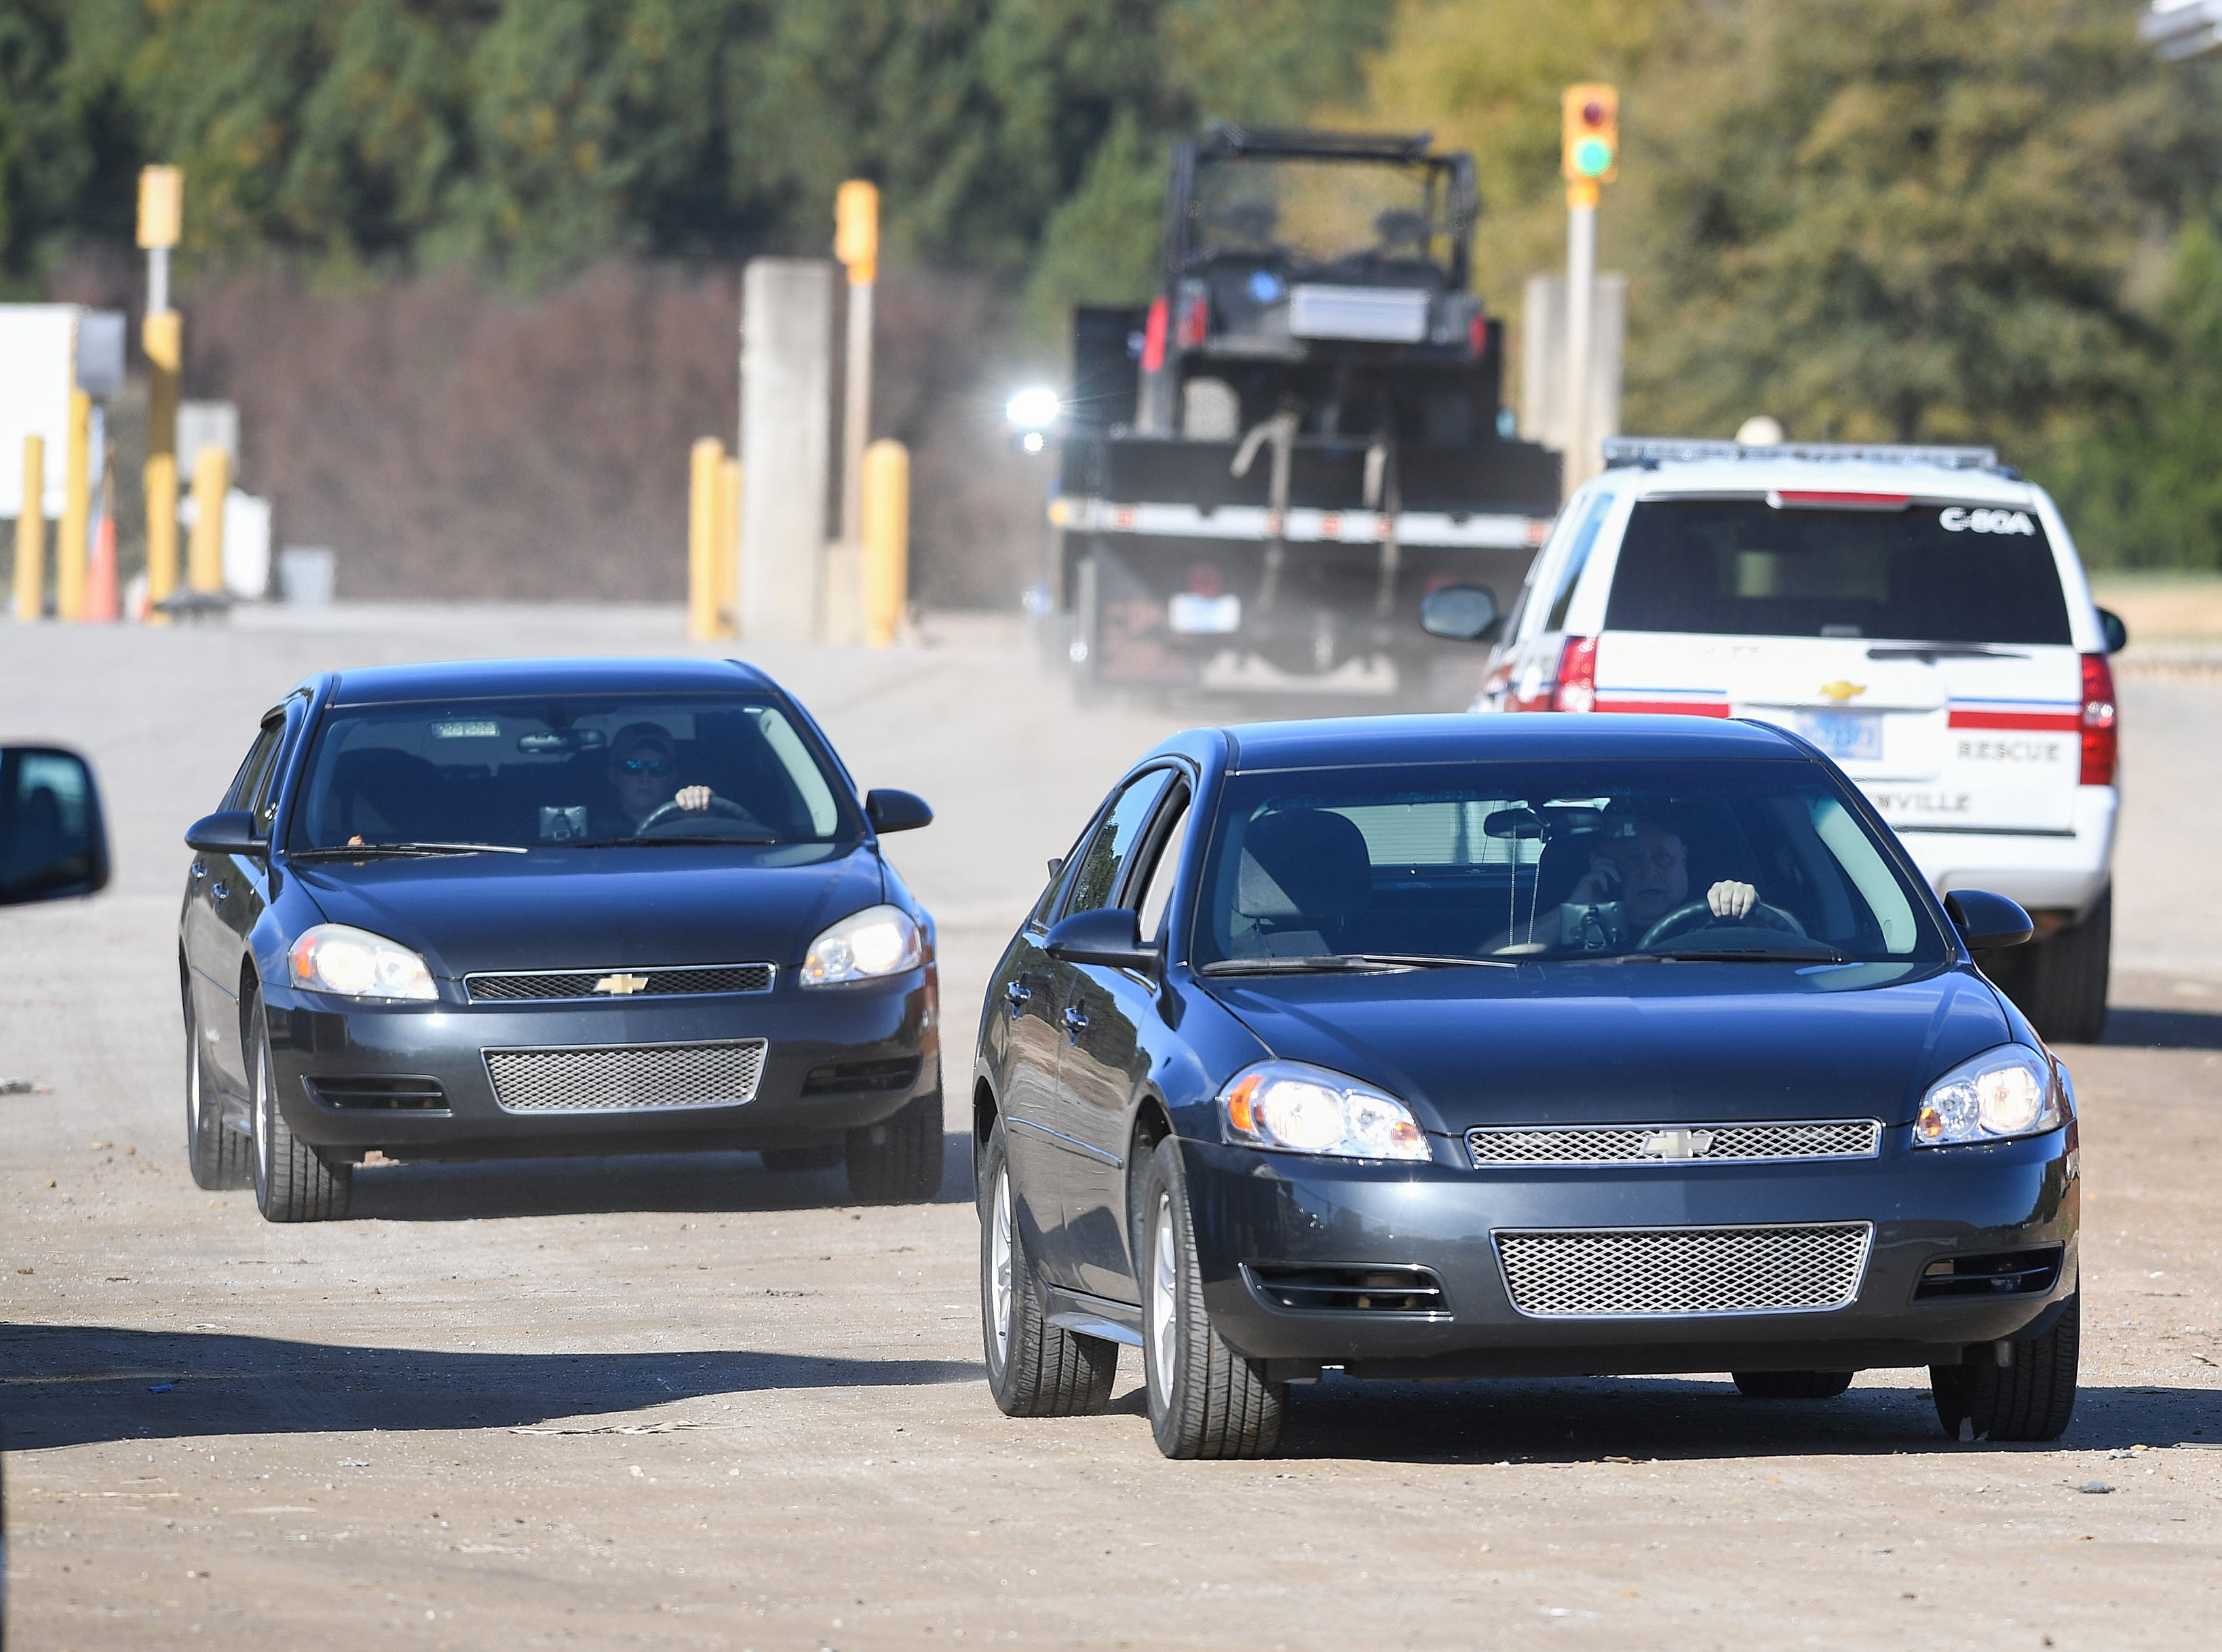 Greenville County coroner Mike Ellis arrives at the Twin Chimneys Landfill in Greenville County where an infant body was found Thursday, November 29, 2018.